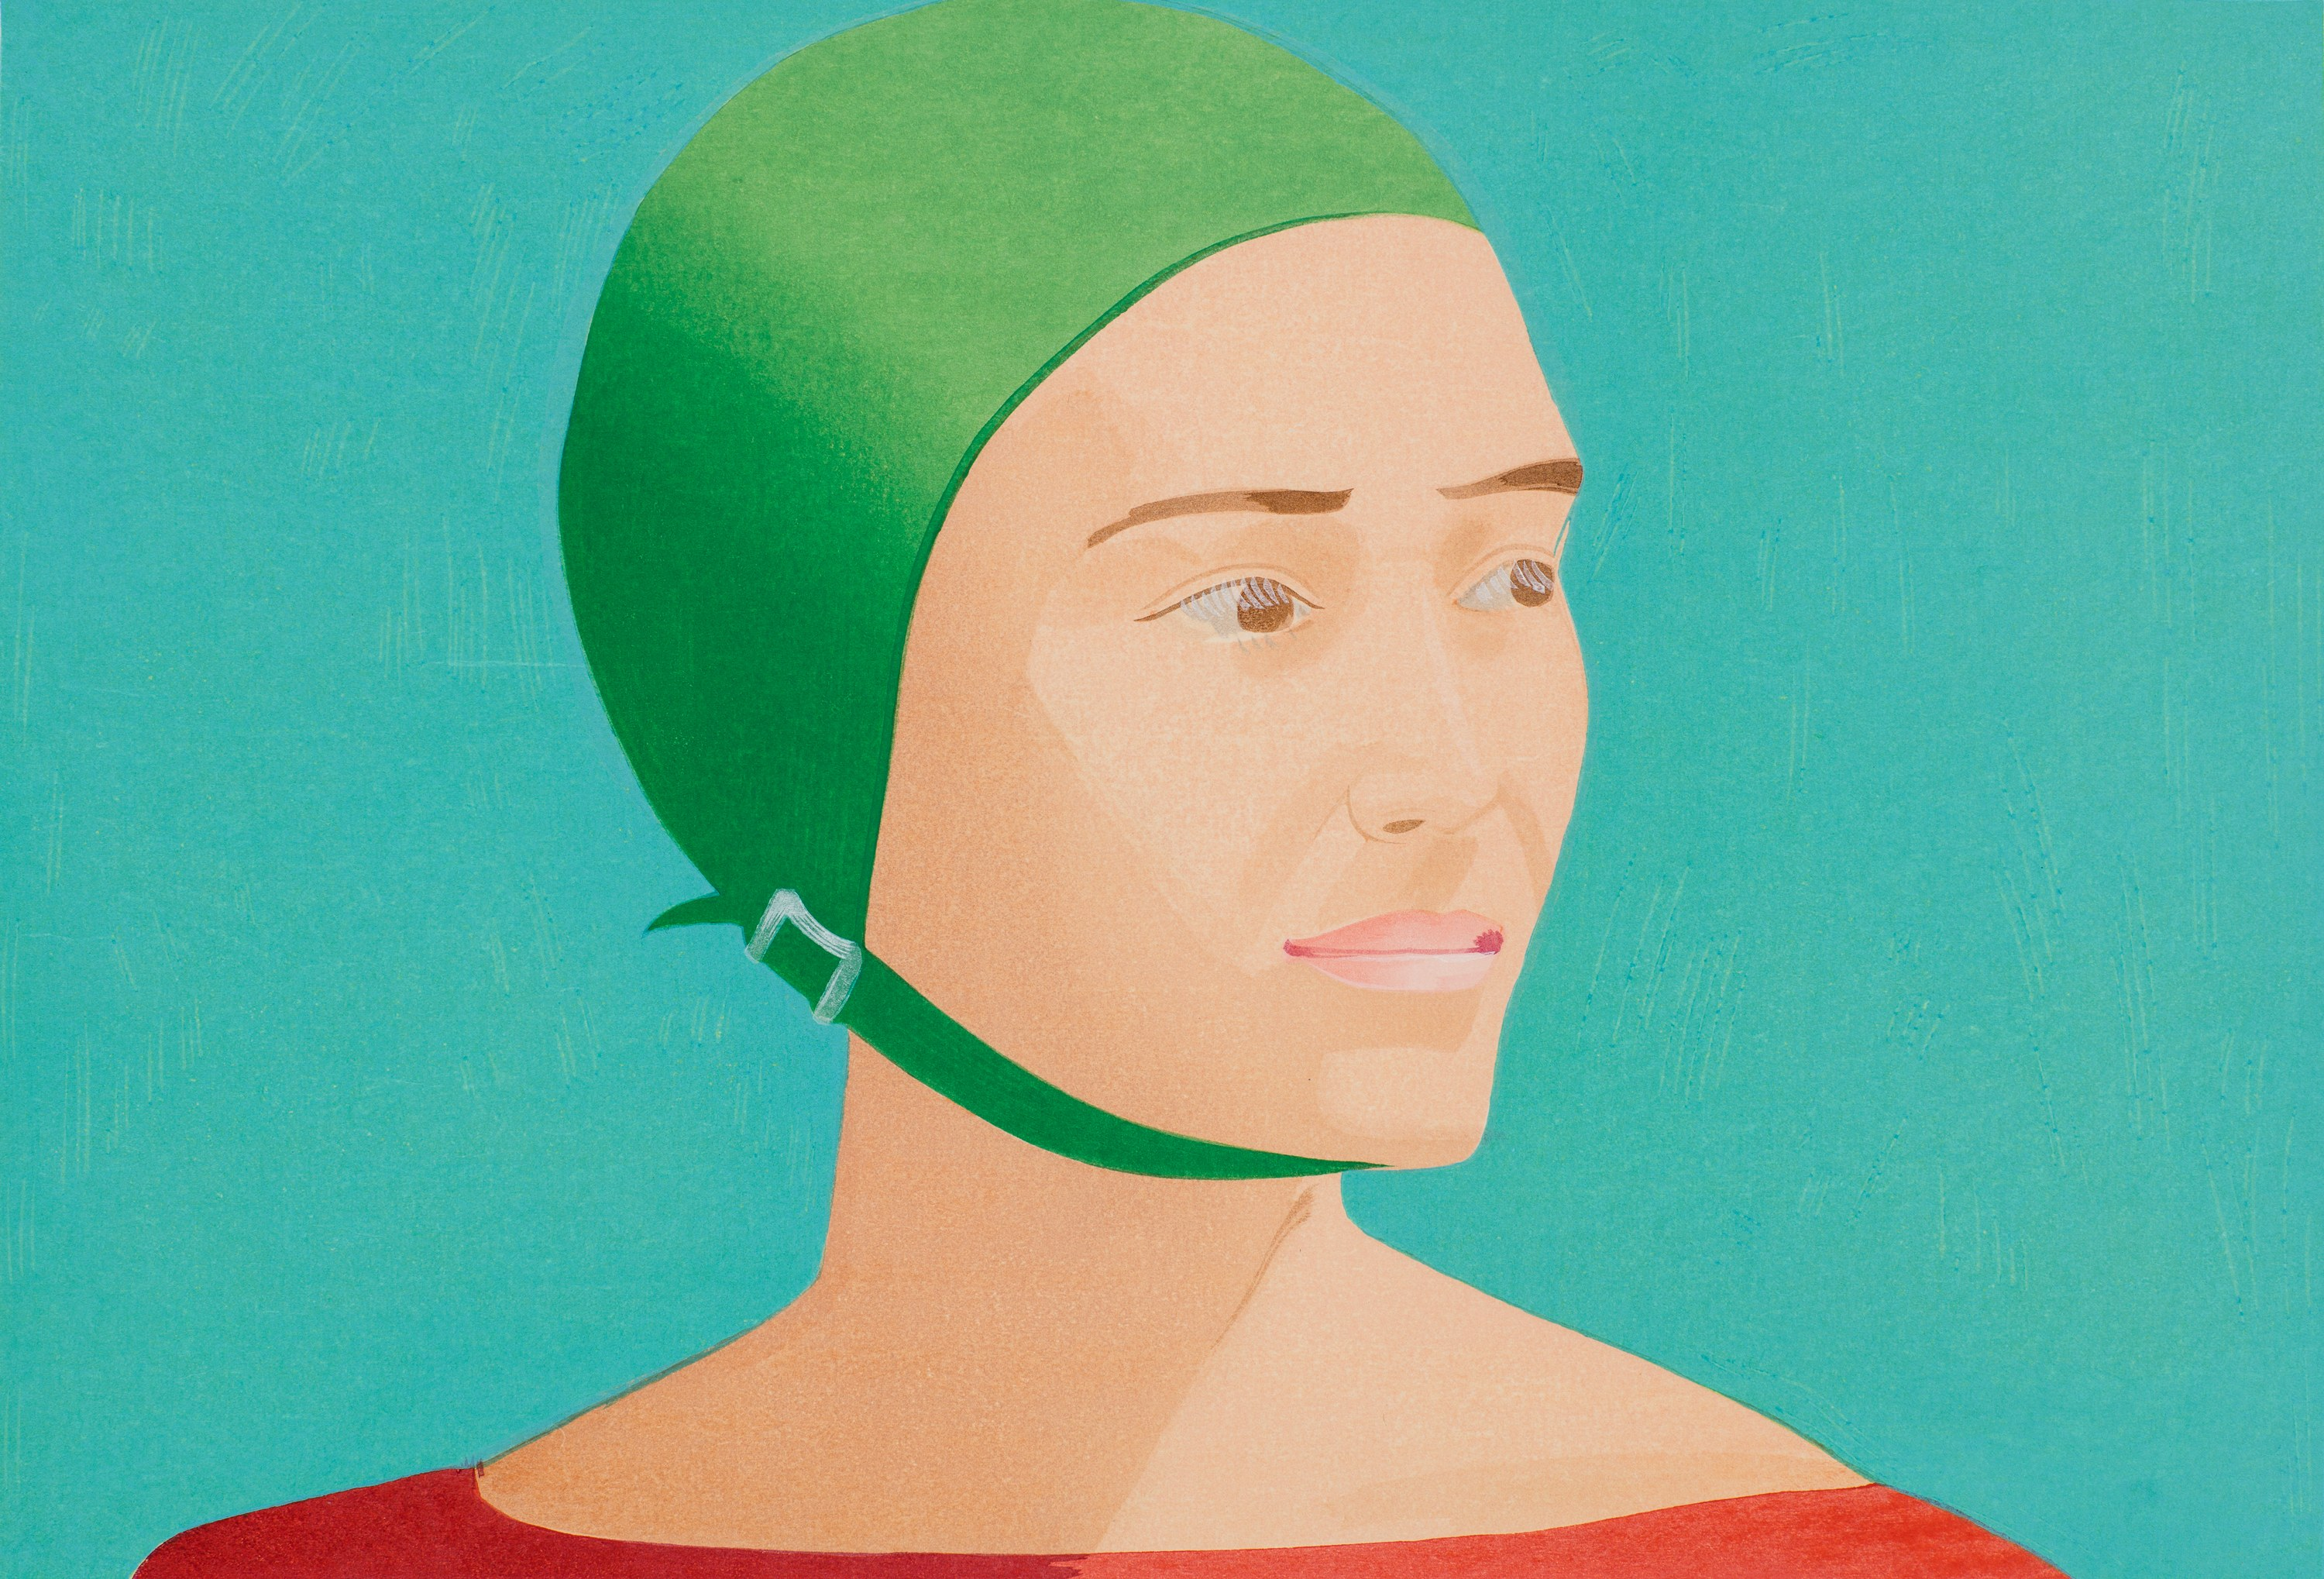 The Green Cap, 1985 — Alex Katz